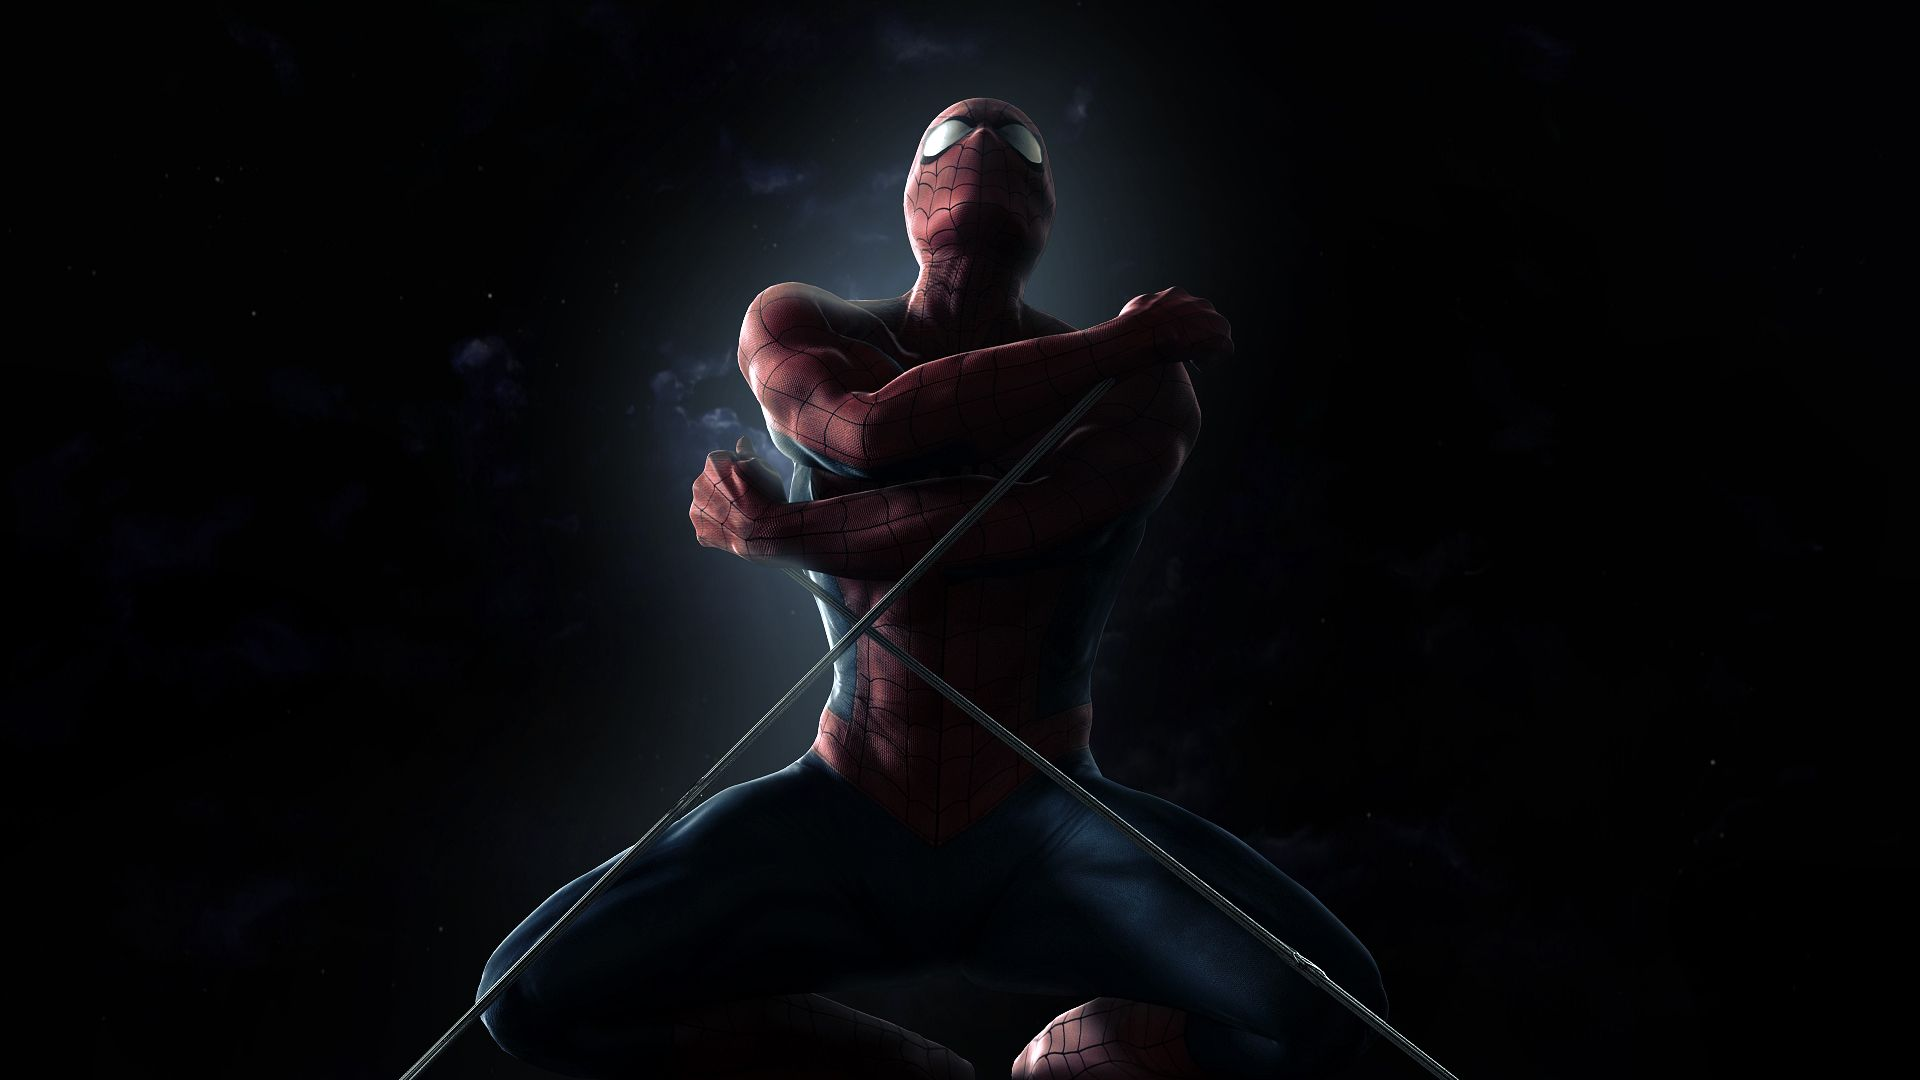 Top Wallpaper High Resolution Spiderman - 9b149e7fedb67e548198fc942c4e78a2  Snapshot_409823.jpg